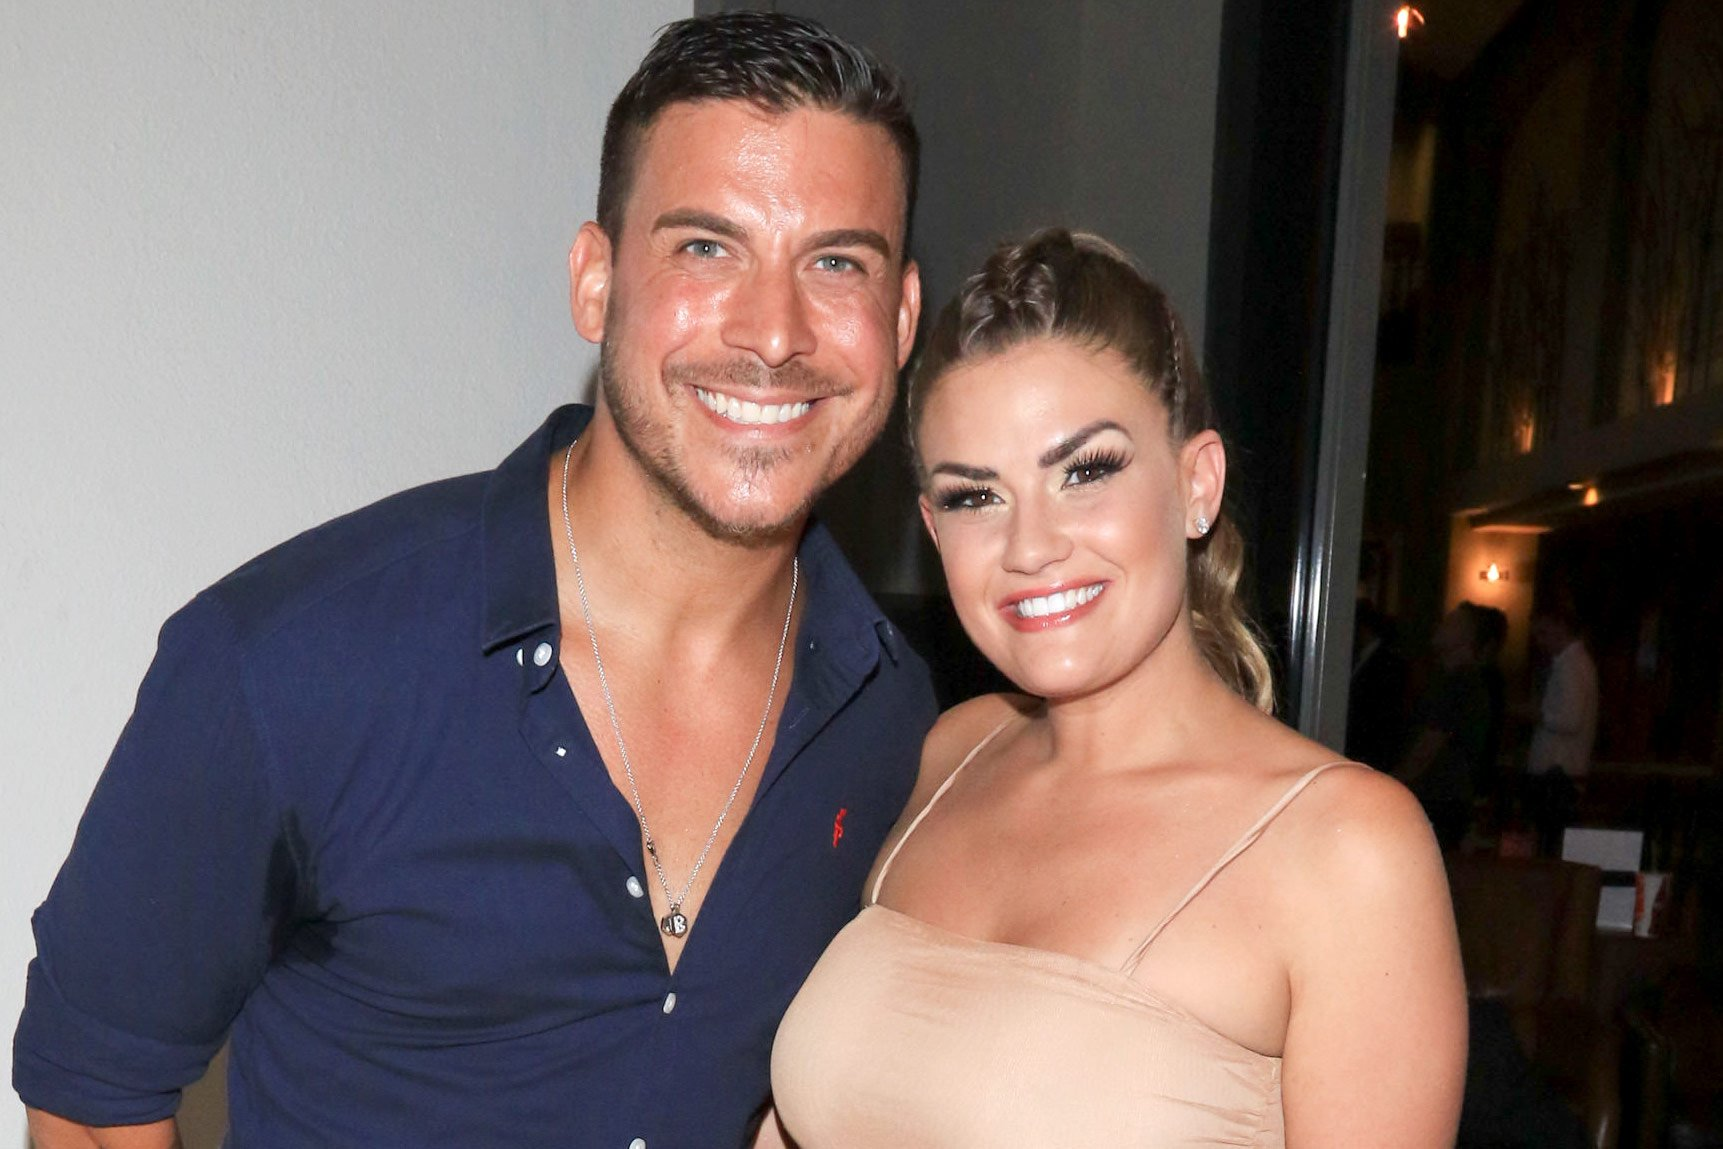 Jax Taylor And Brittany Cartwright – Inside Their New Show Plans After 'Vanderpump Rules' Exit!